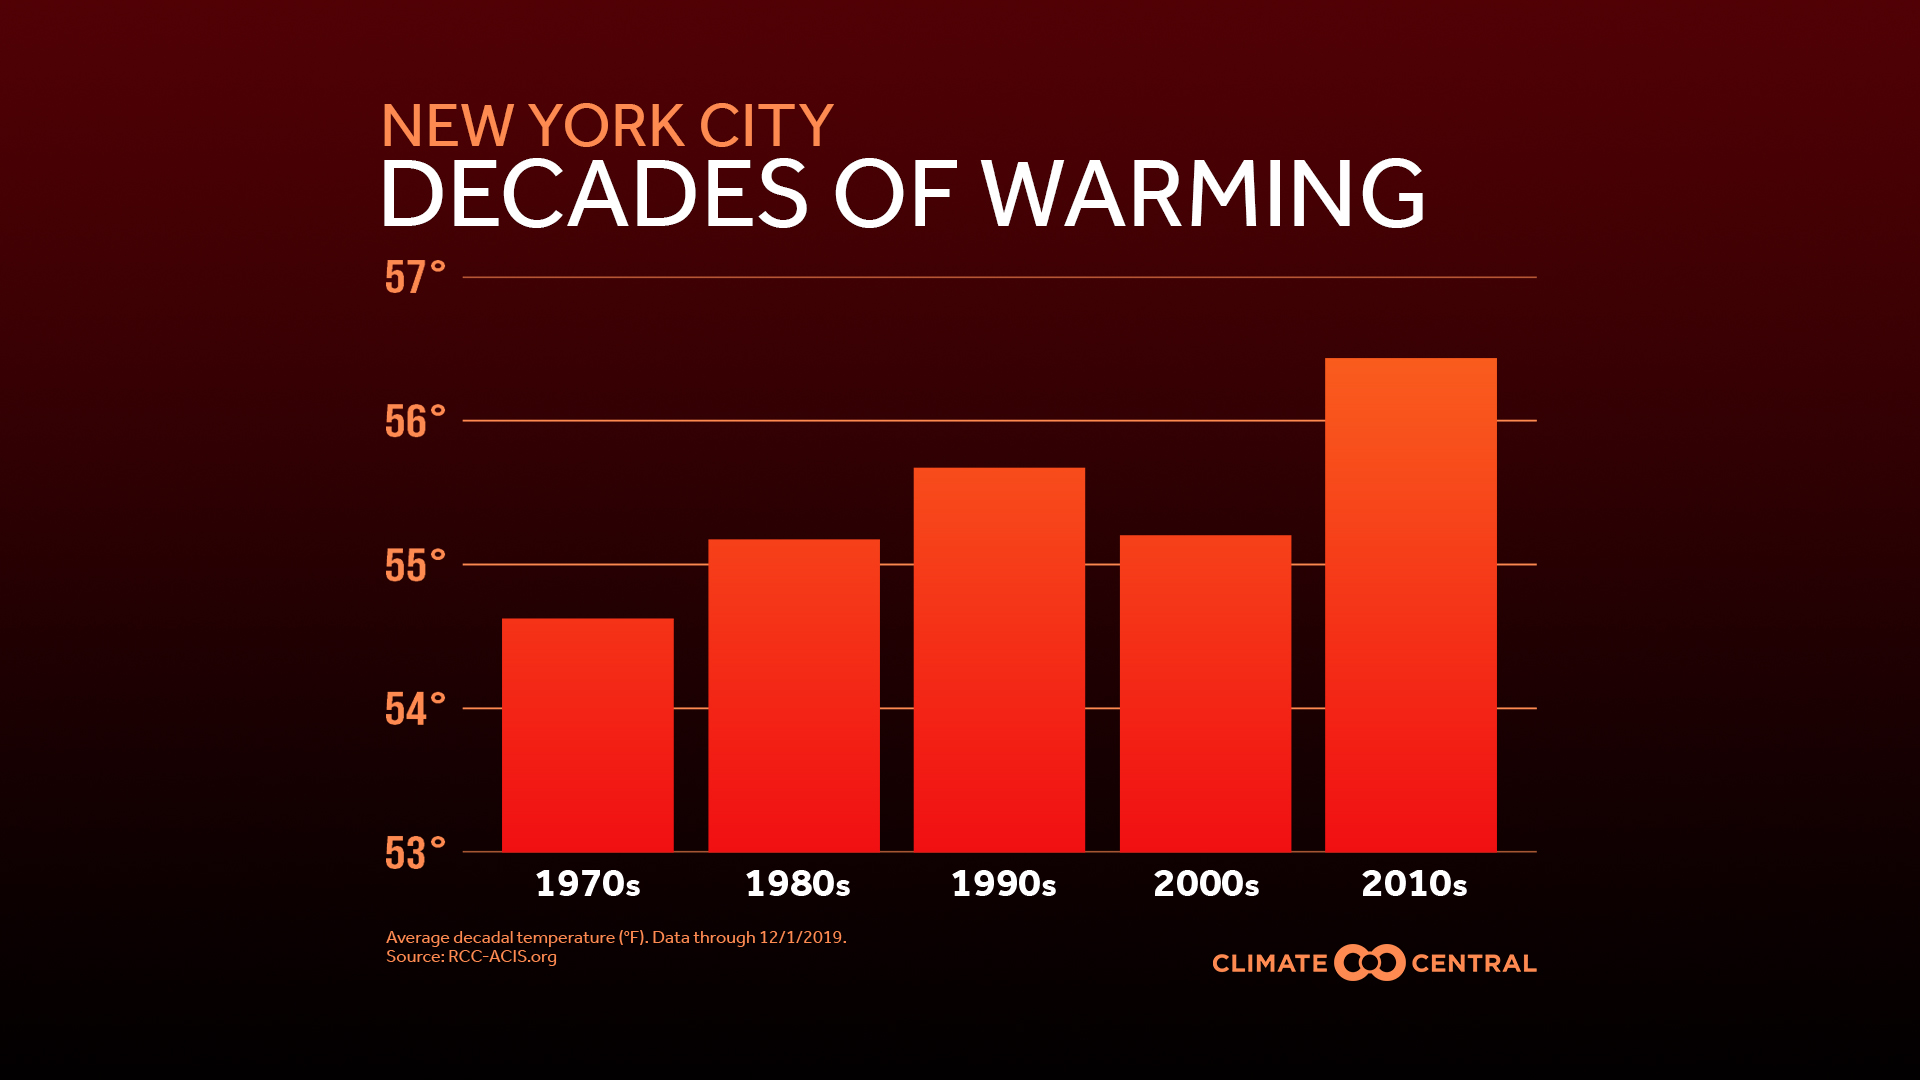 Decades of Warming in U.S. Cities